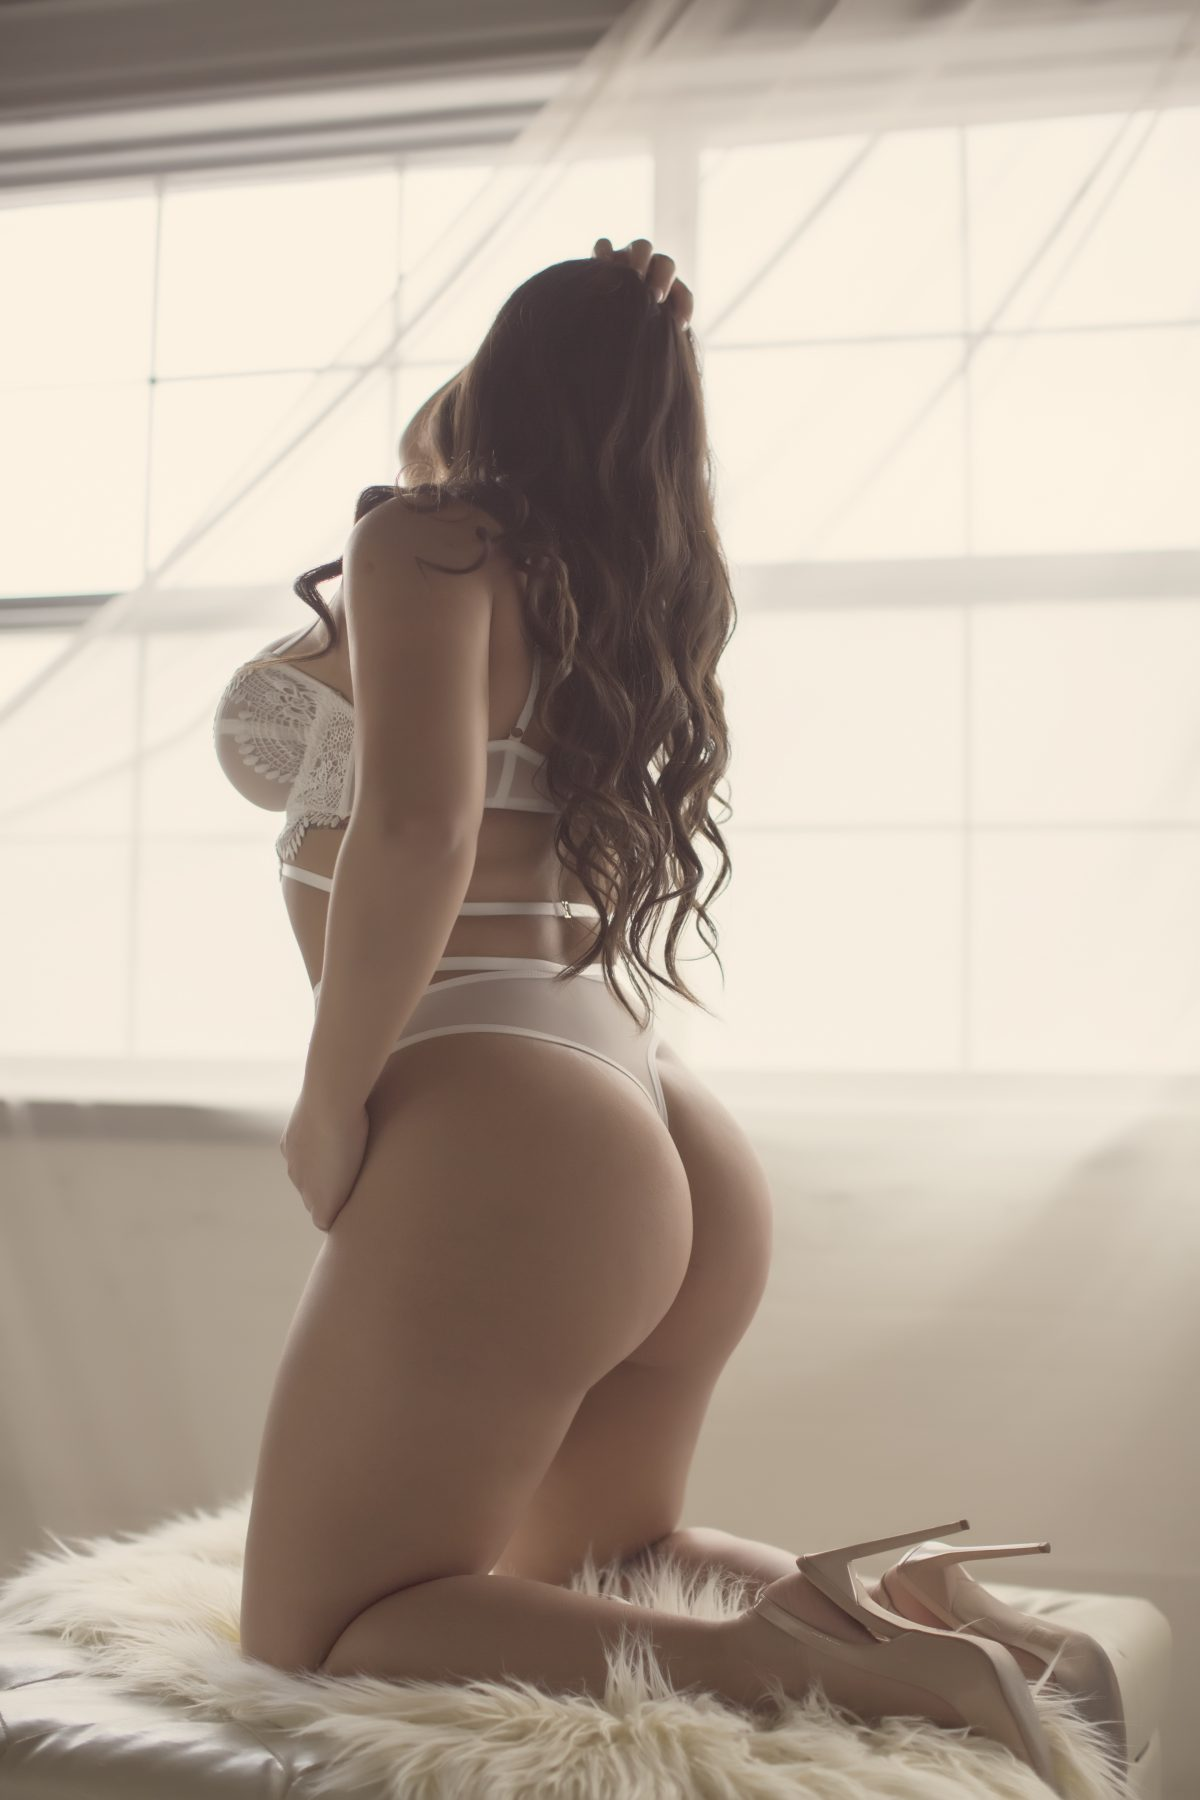 Toronto escorts companion upscale Layla Interests Duo Couple-friendly Disability-friendly Non-smoking Young Curvy Petite Natural Brunette Exotic